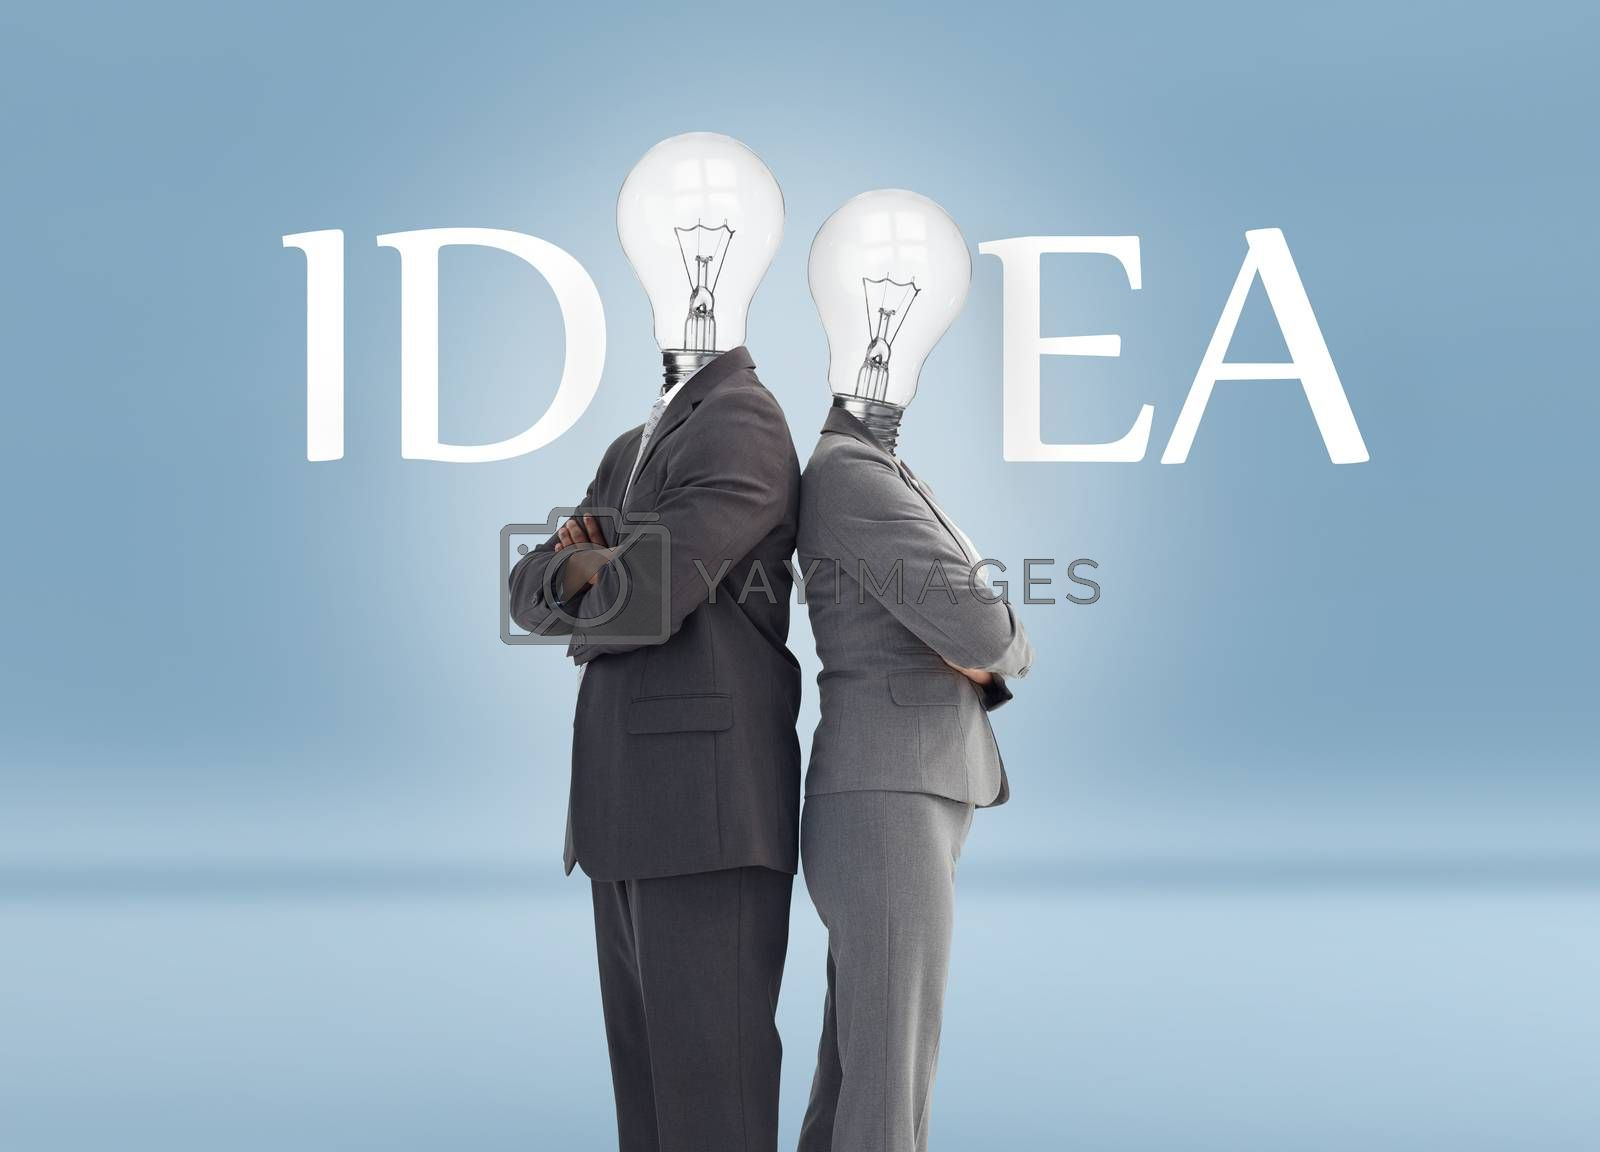 Business people with light bulb heads and idea text posing against blue background